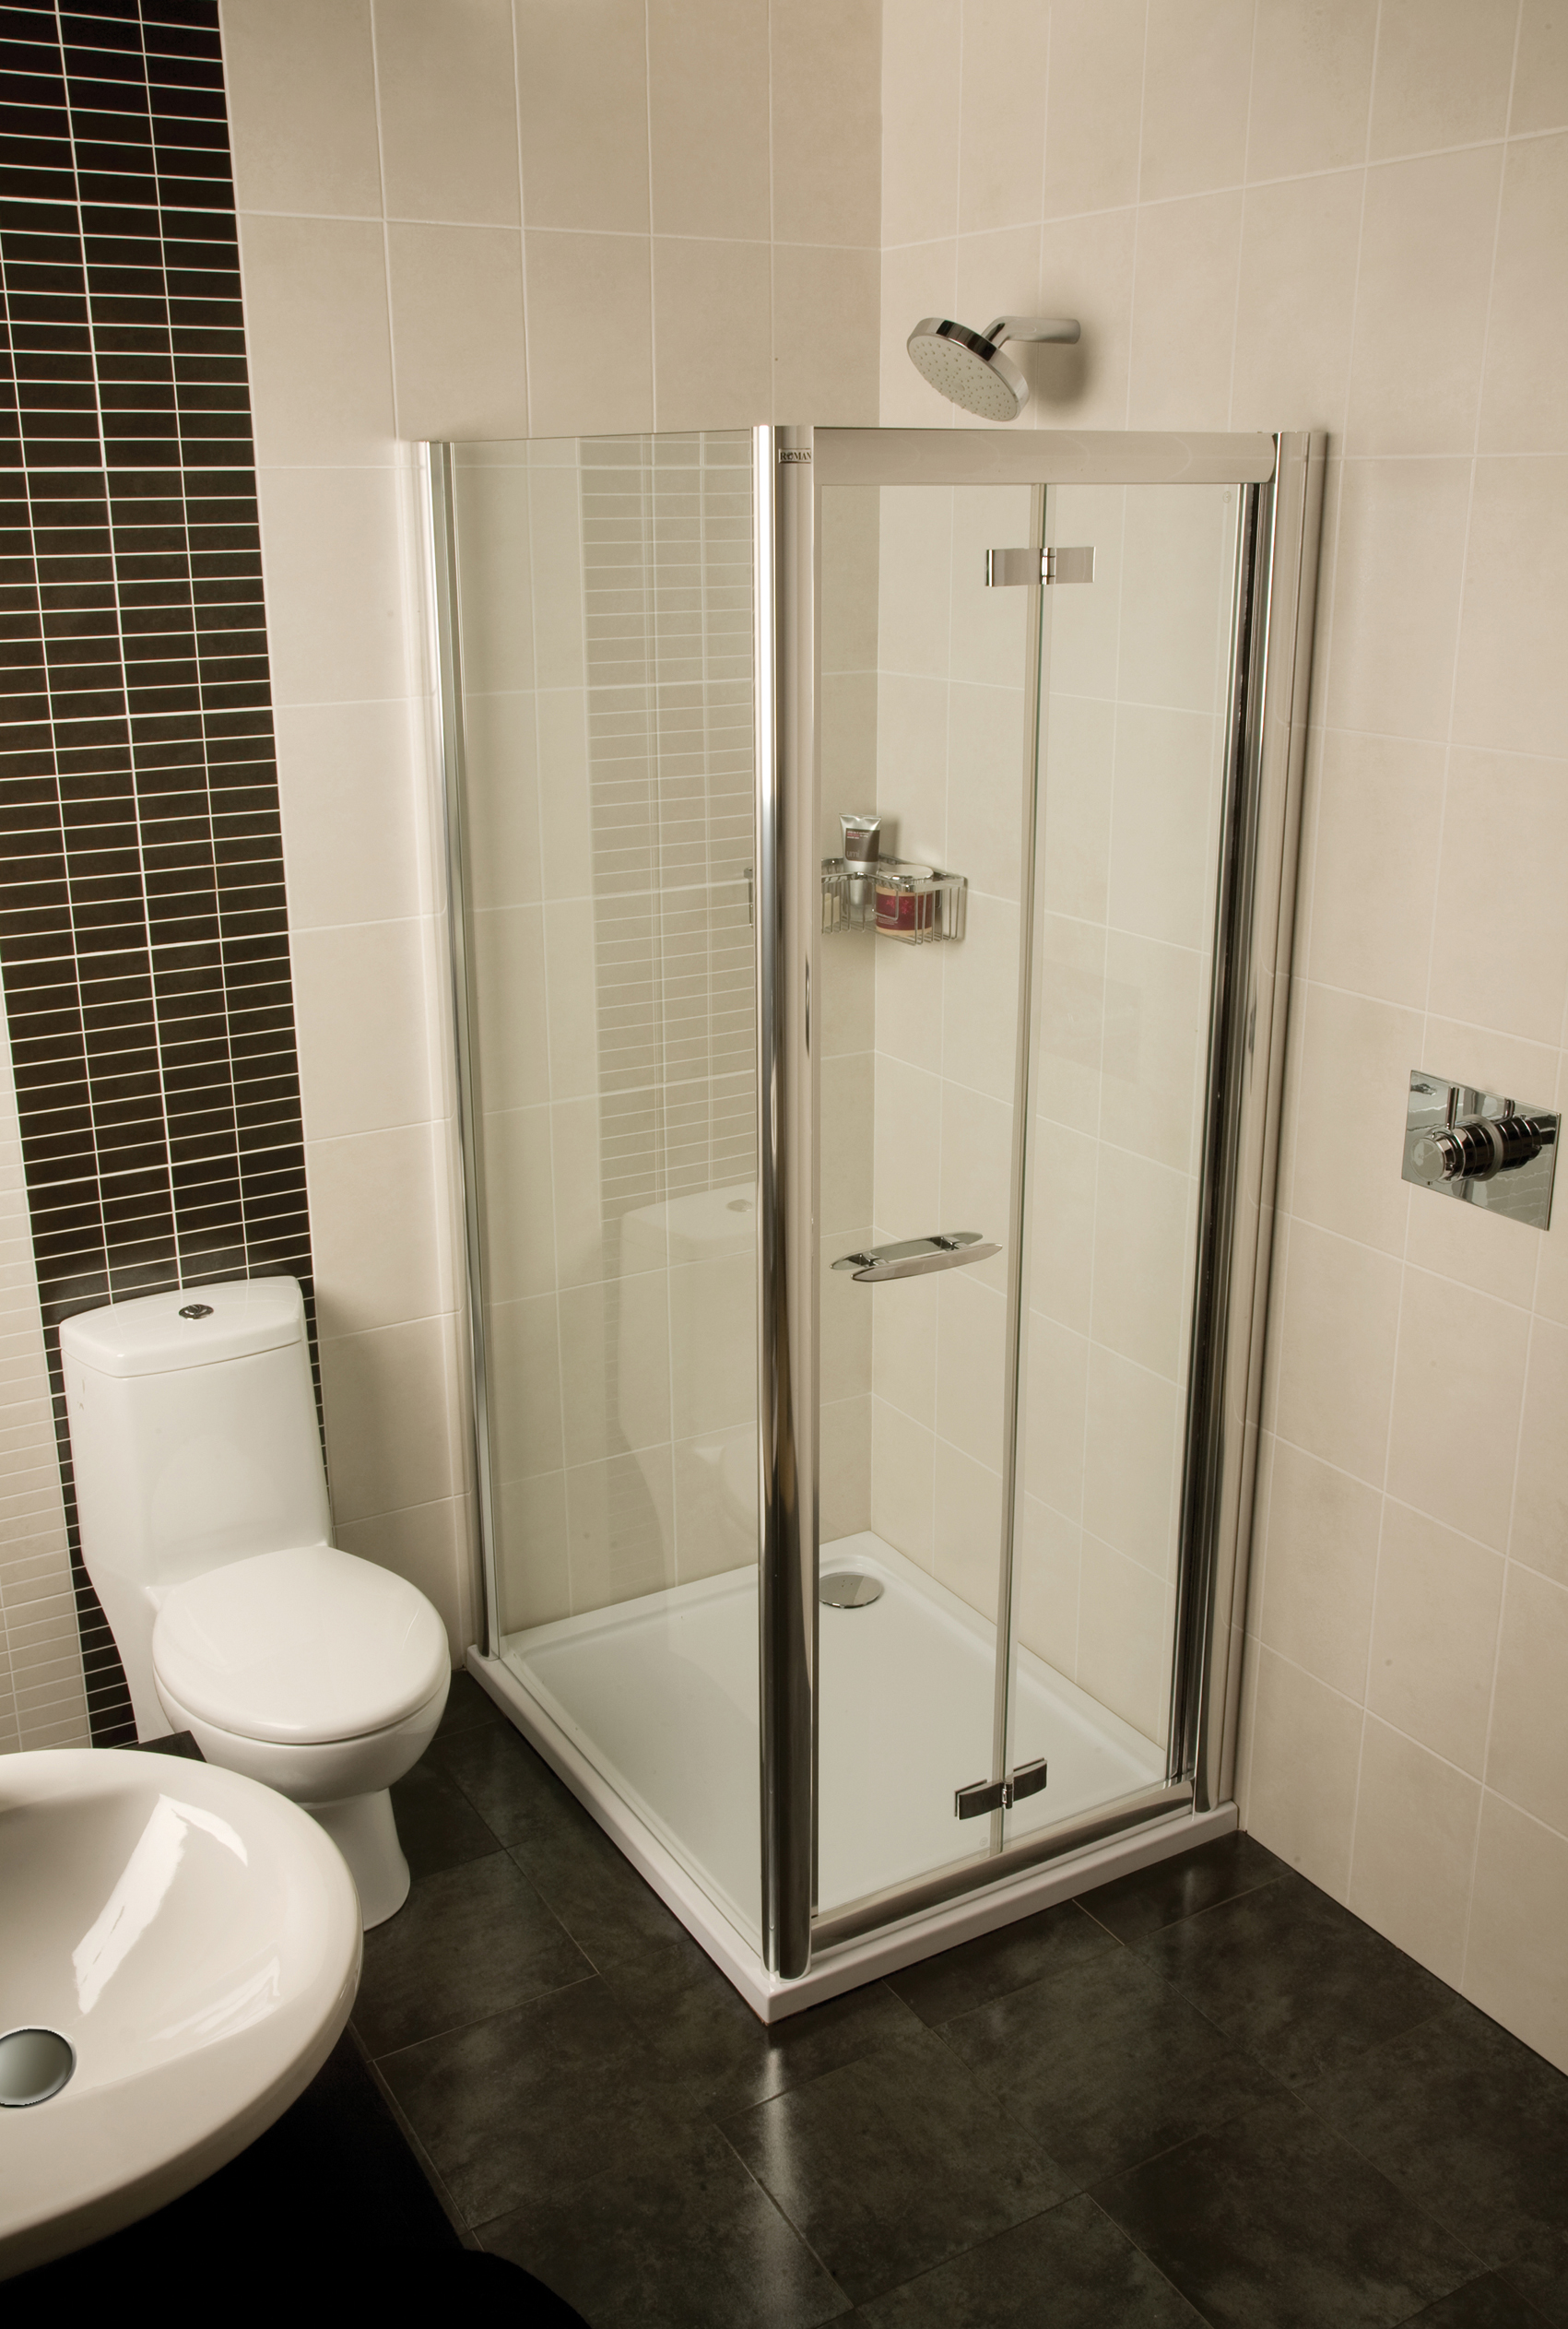 Space saving shower solutions for small bathroom